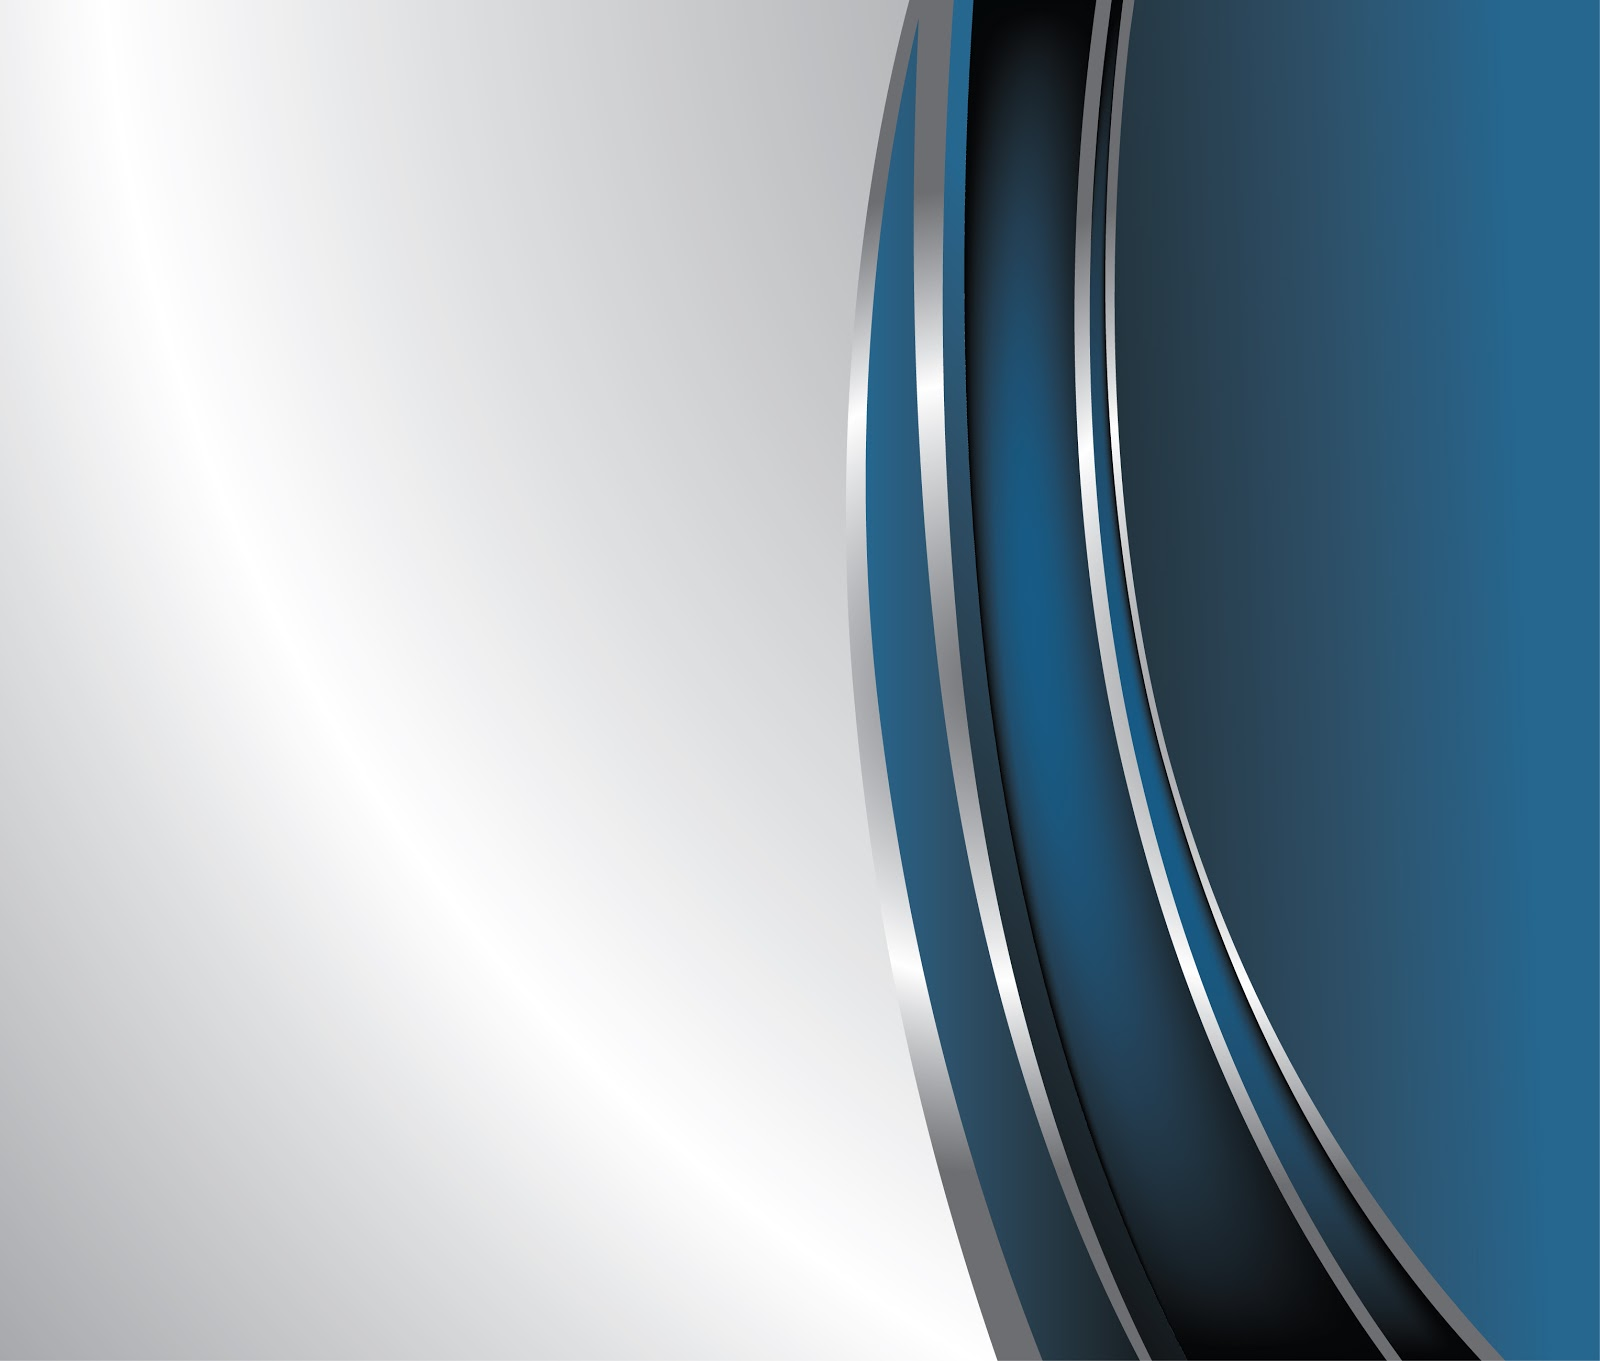 Blue and Silver Abstract Backgrounds